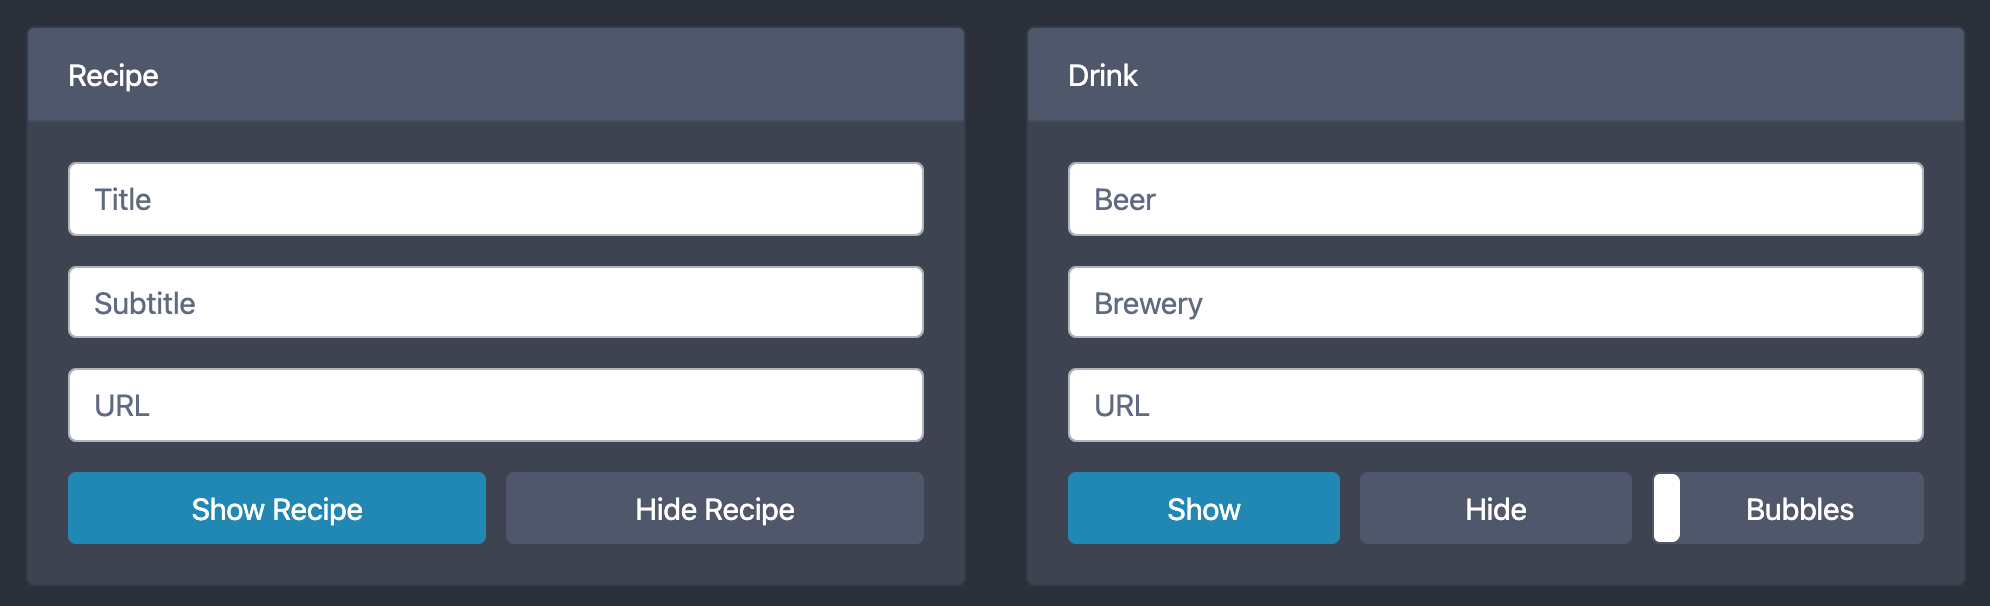 Recipe and Drink Panels